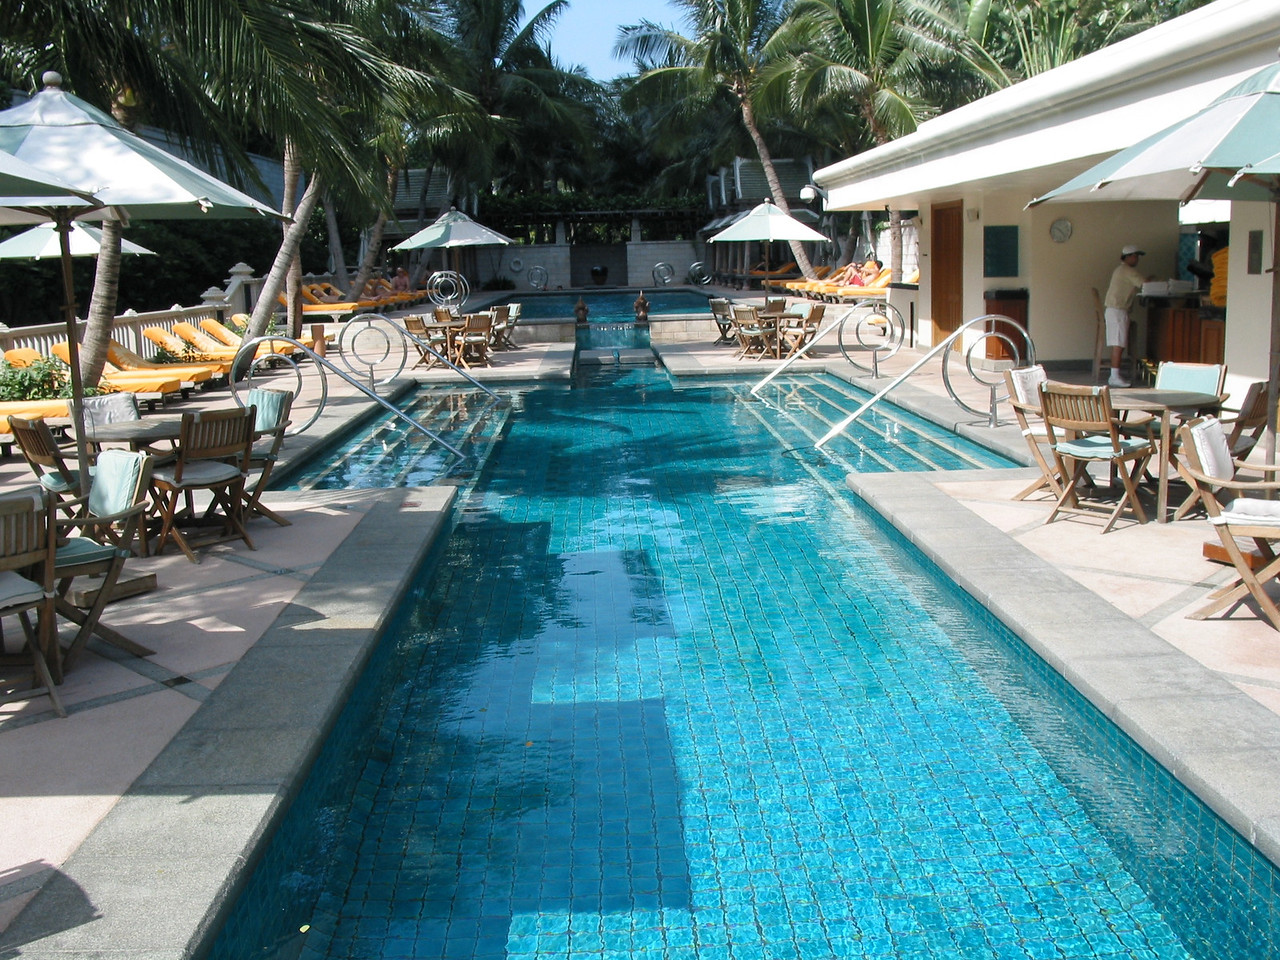 The pool area is large and has an infinity edge at the opposite end facing the Chao Praya.